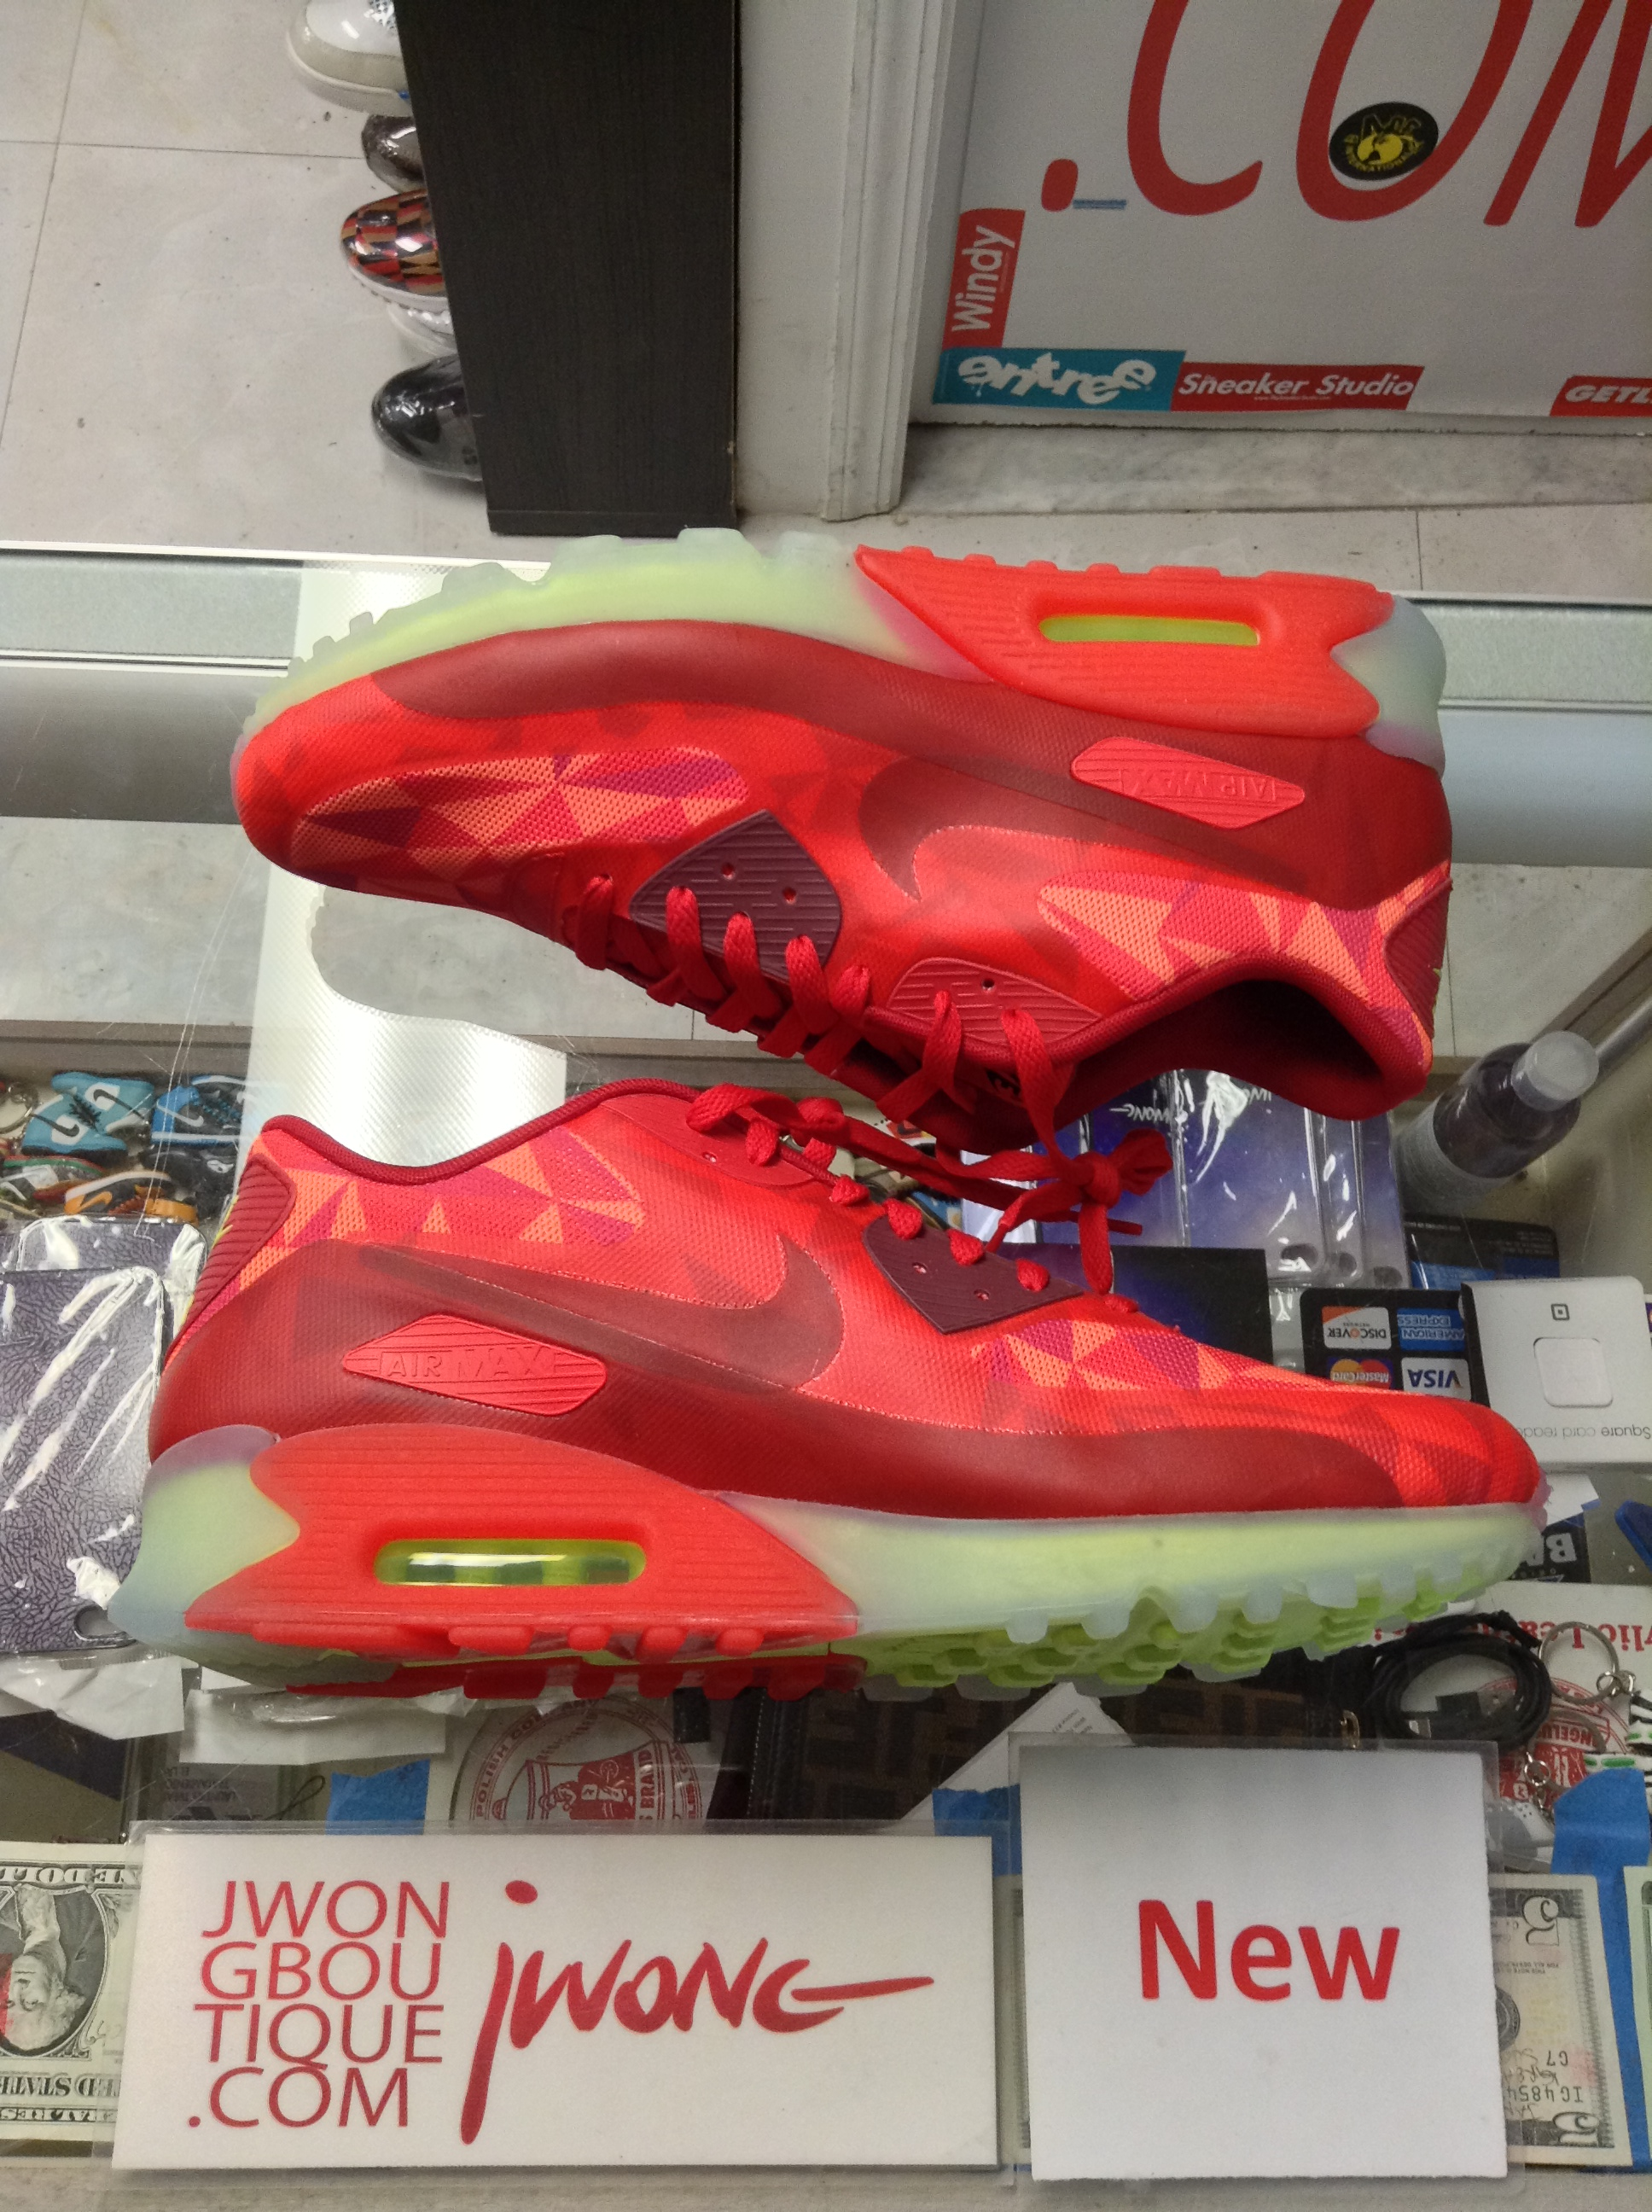 fe6d7aabb9 2014 Nike Air Max 90 Ice Gym Red | Jwong Boutique